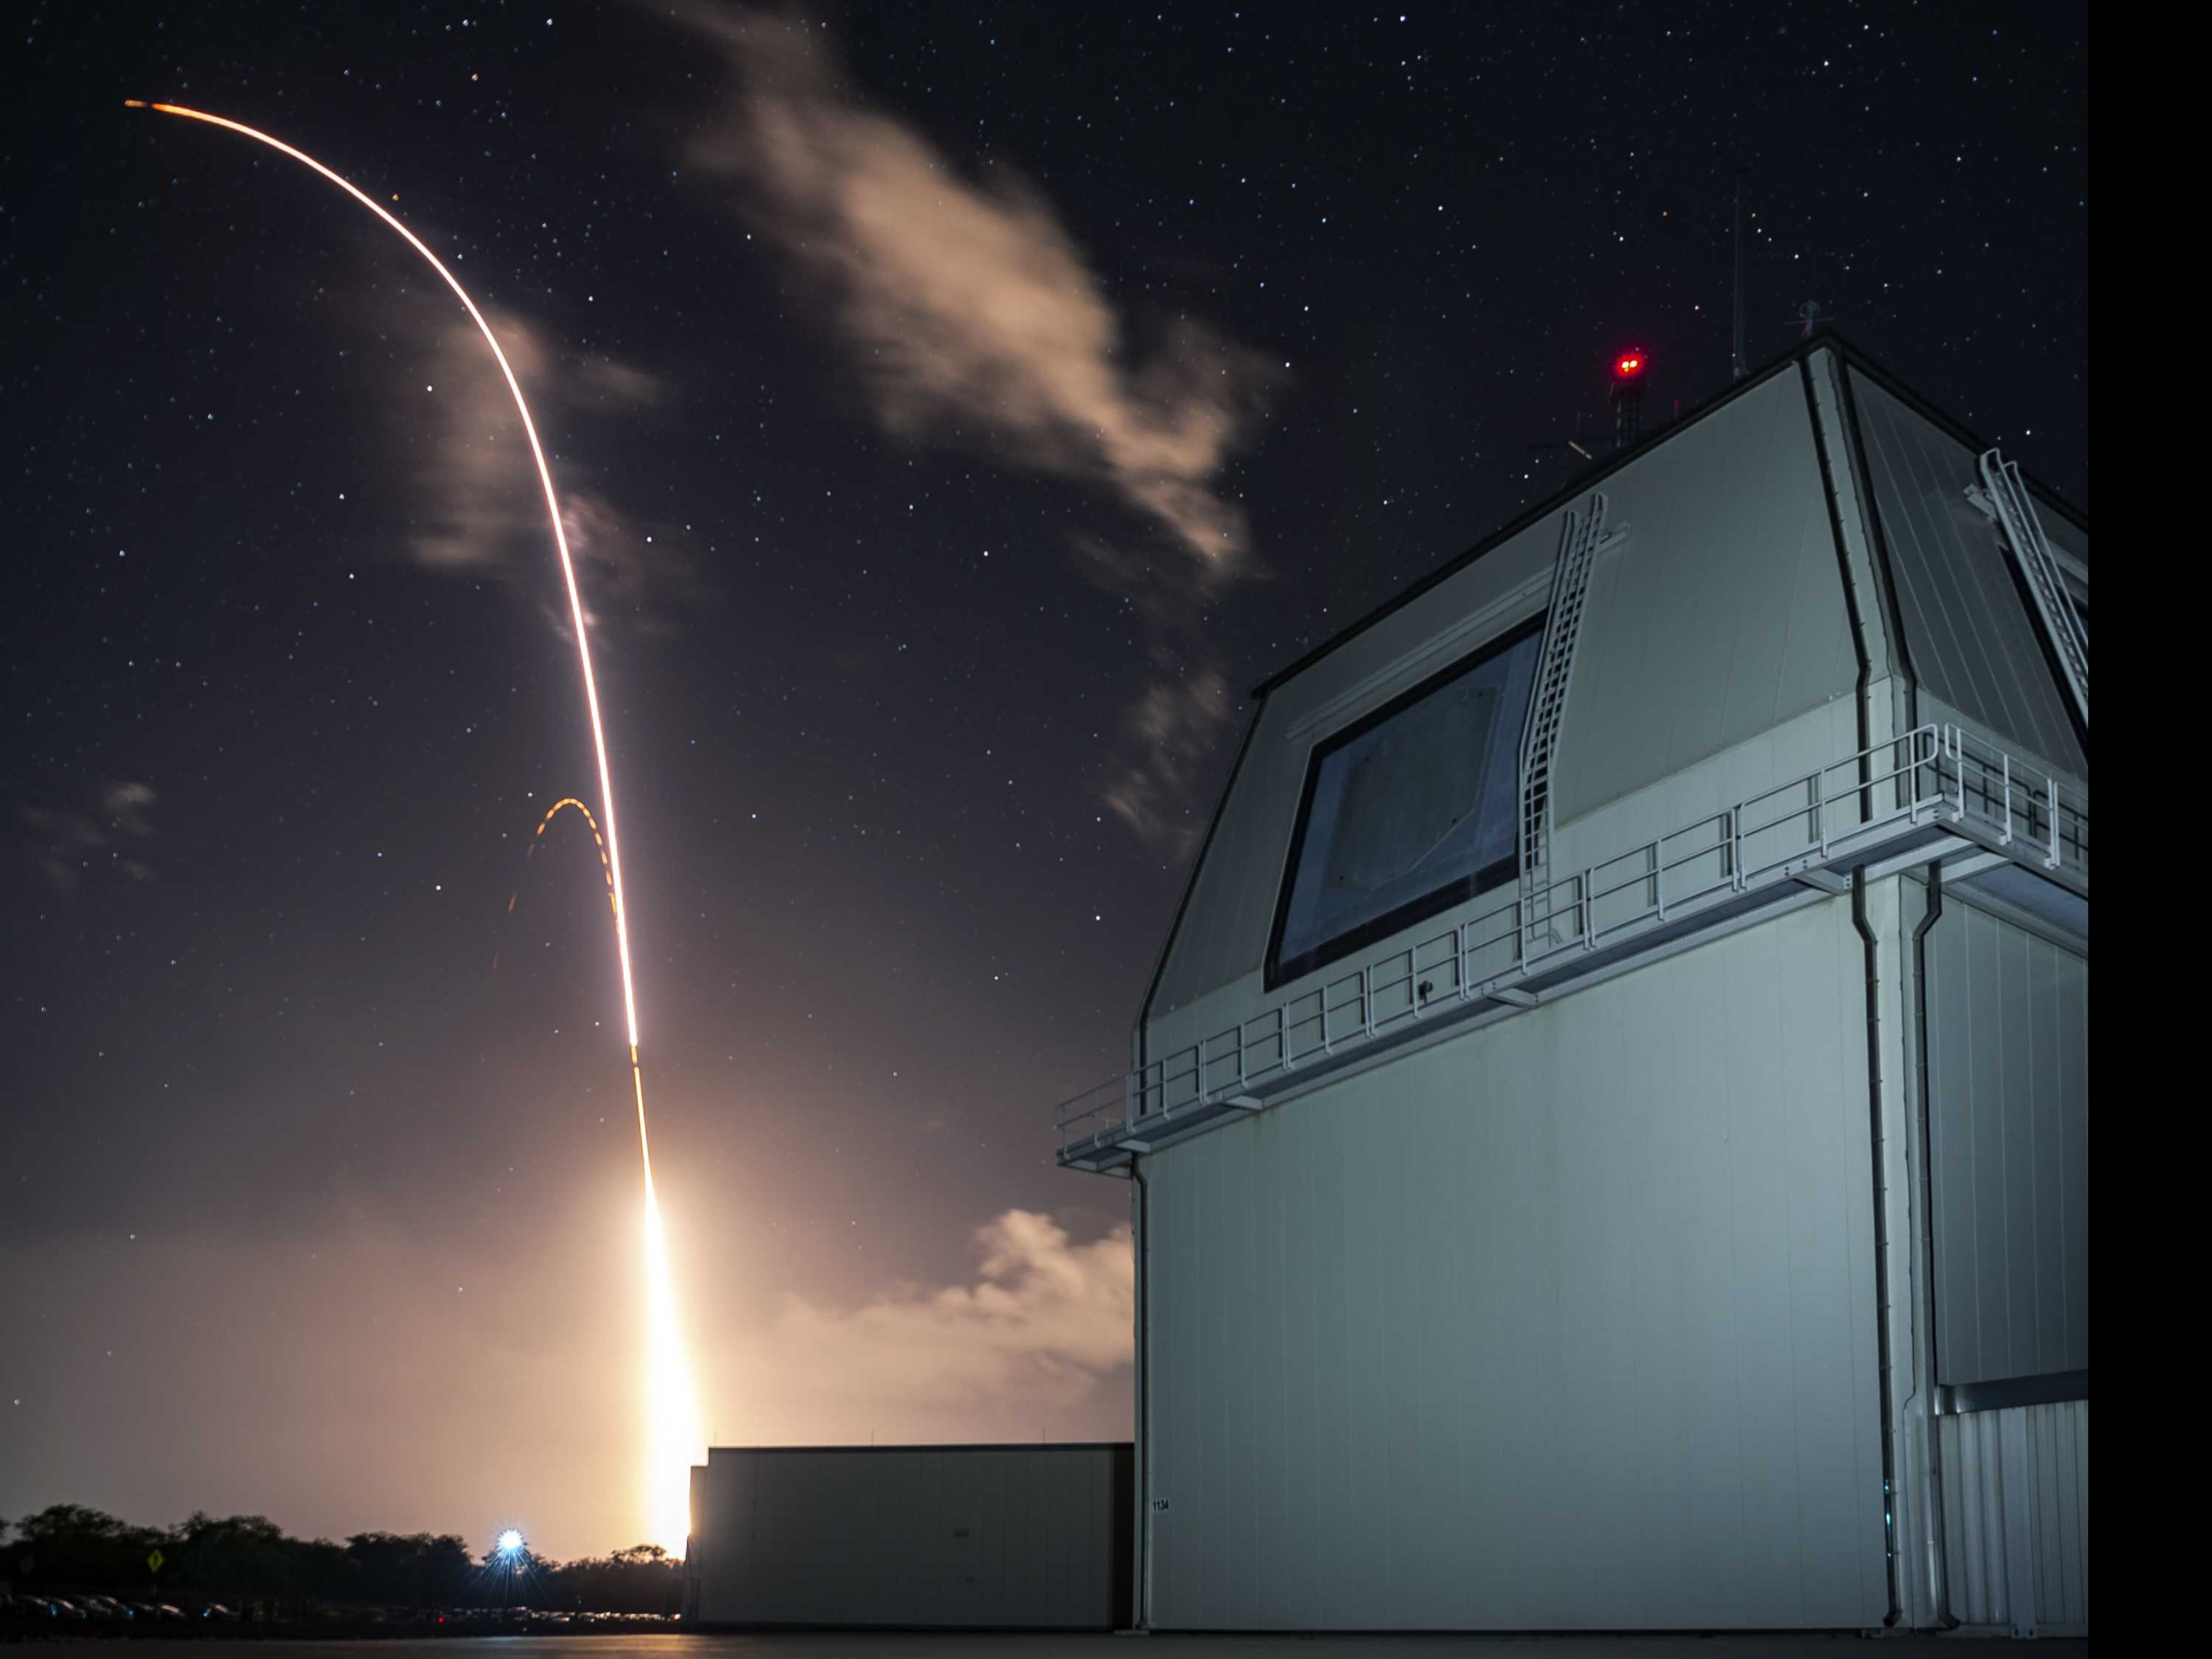 U.S. Military's Aegis System Intercepts Test Missile in Hawaii